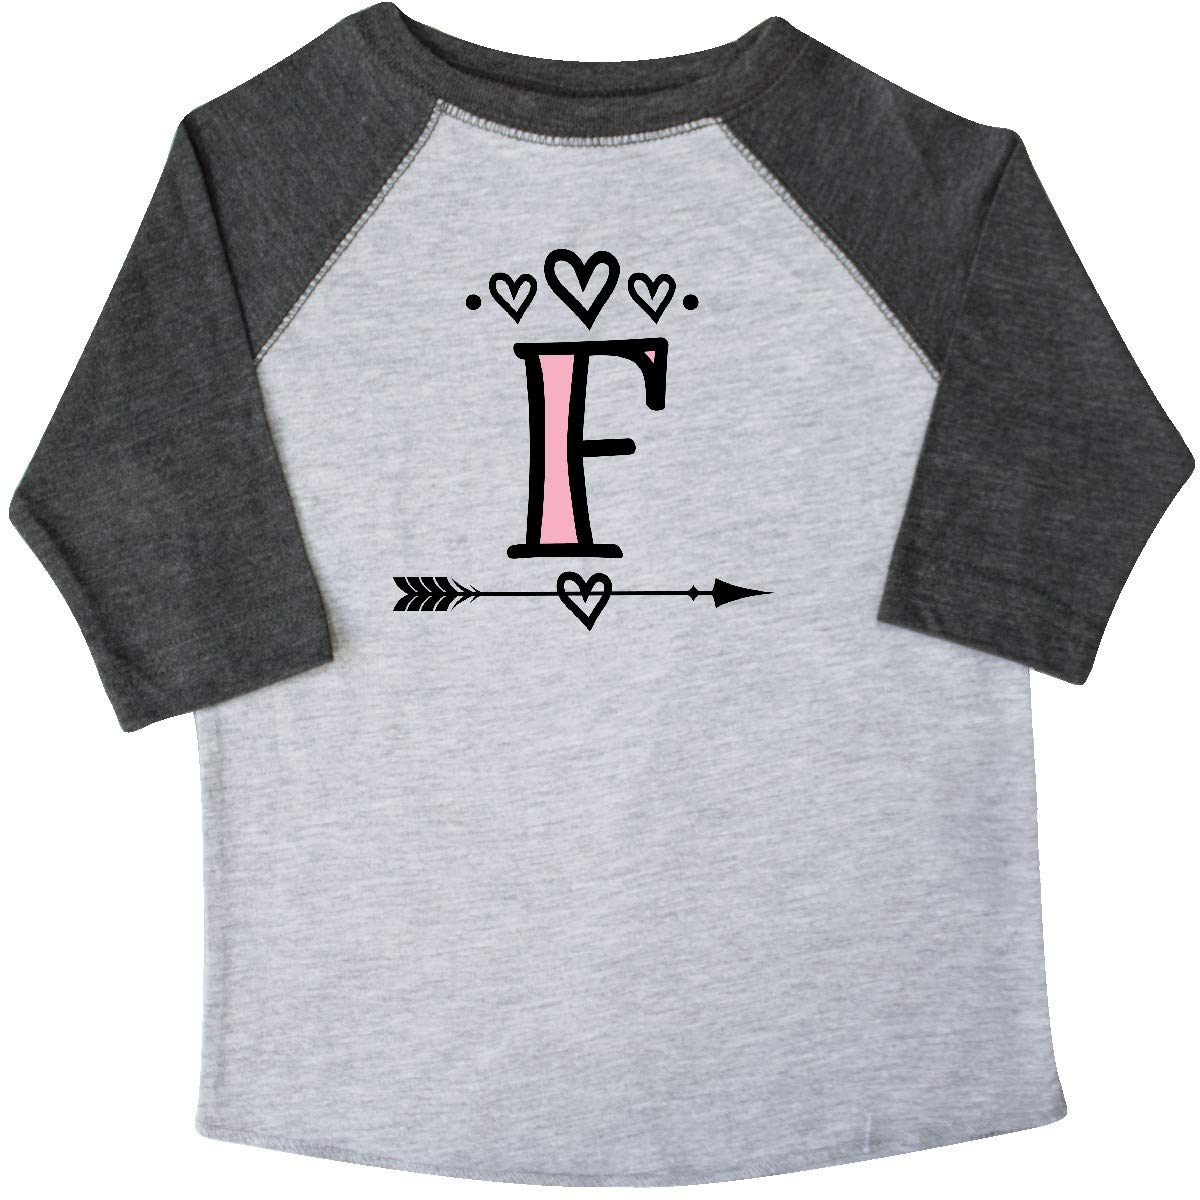 inktastic Letter F Monogram Tribal Arrow Toddler T-Shirt